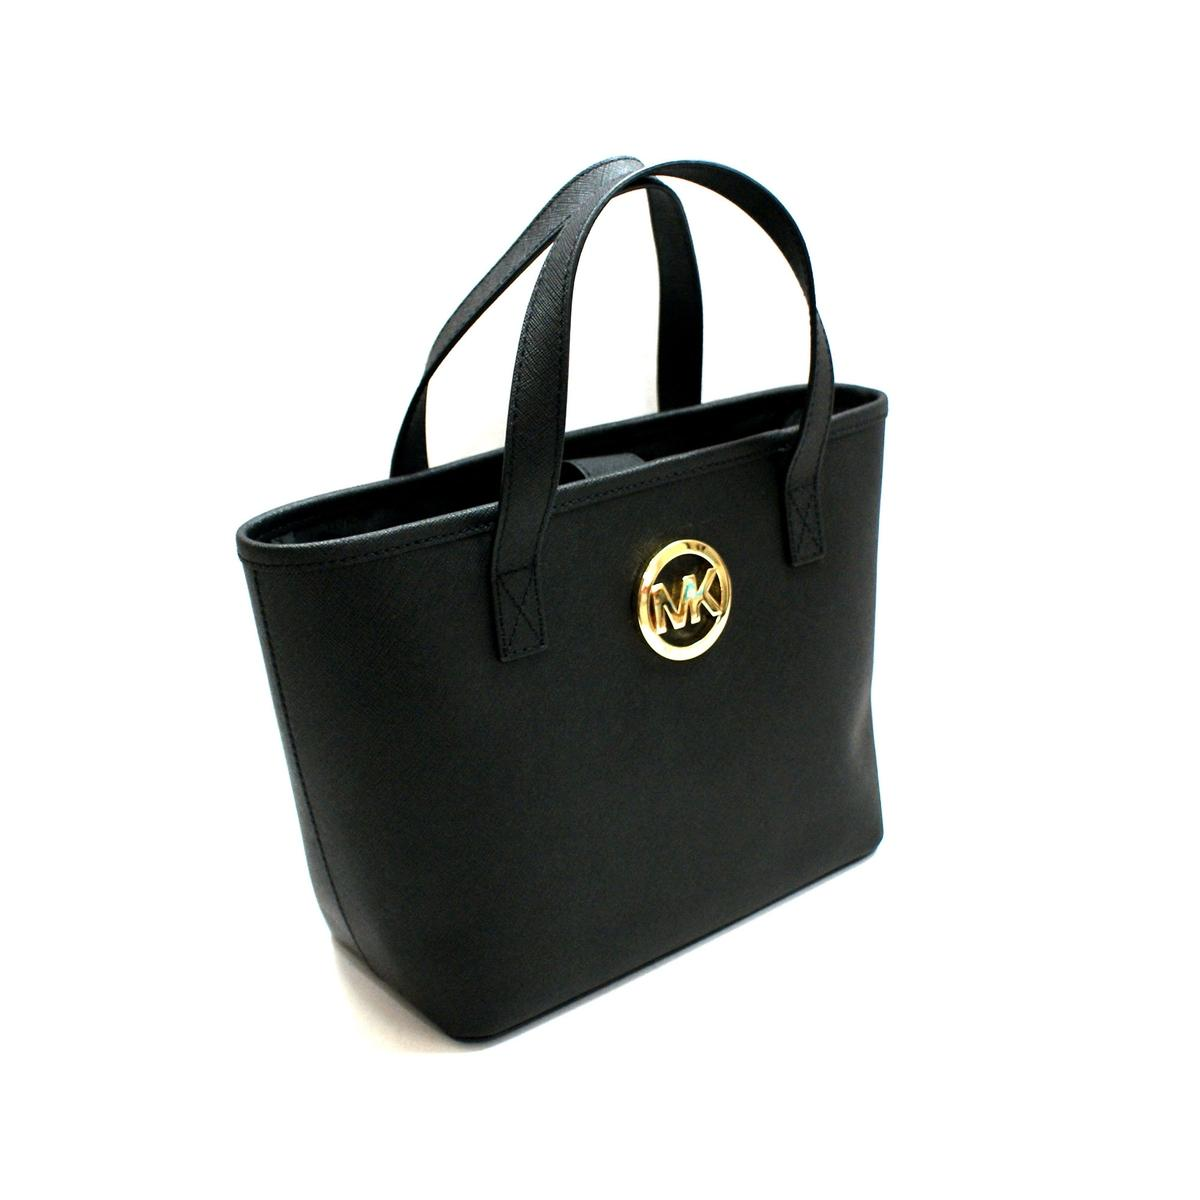 af837a5e04fa6 ... australia home michael kors jet set xs small travel tote black. click  thumbnail to zoom